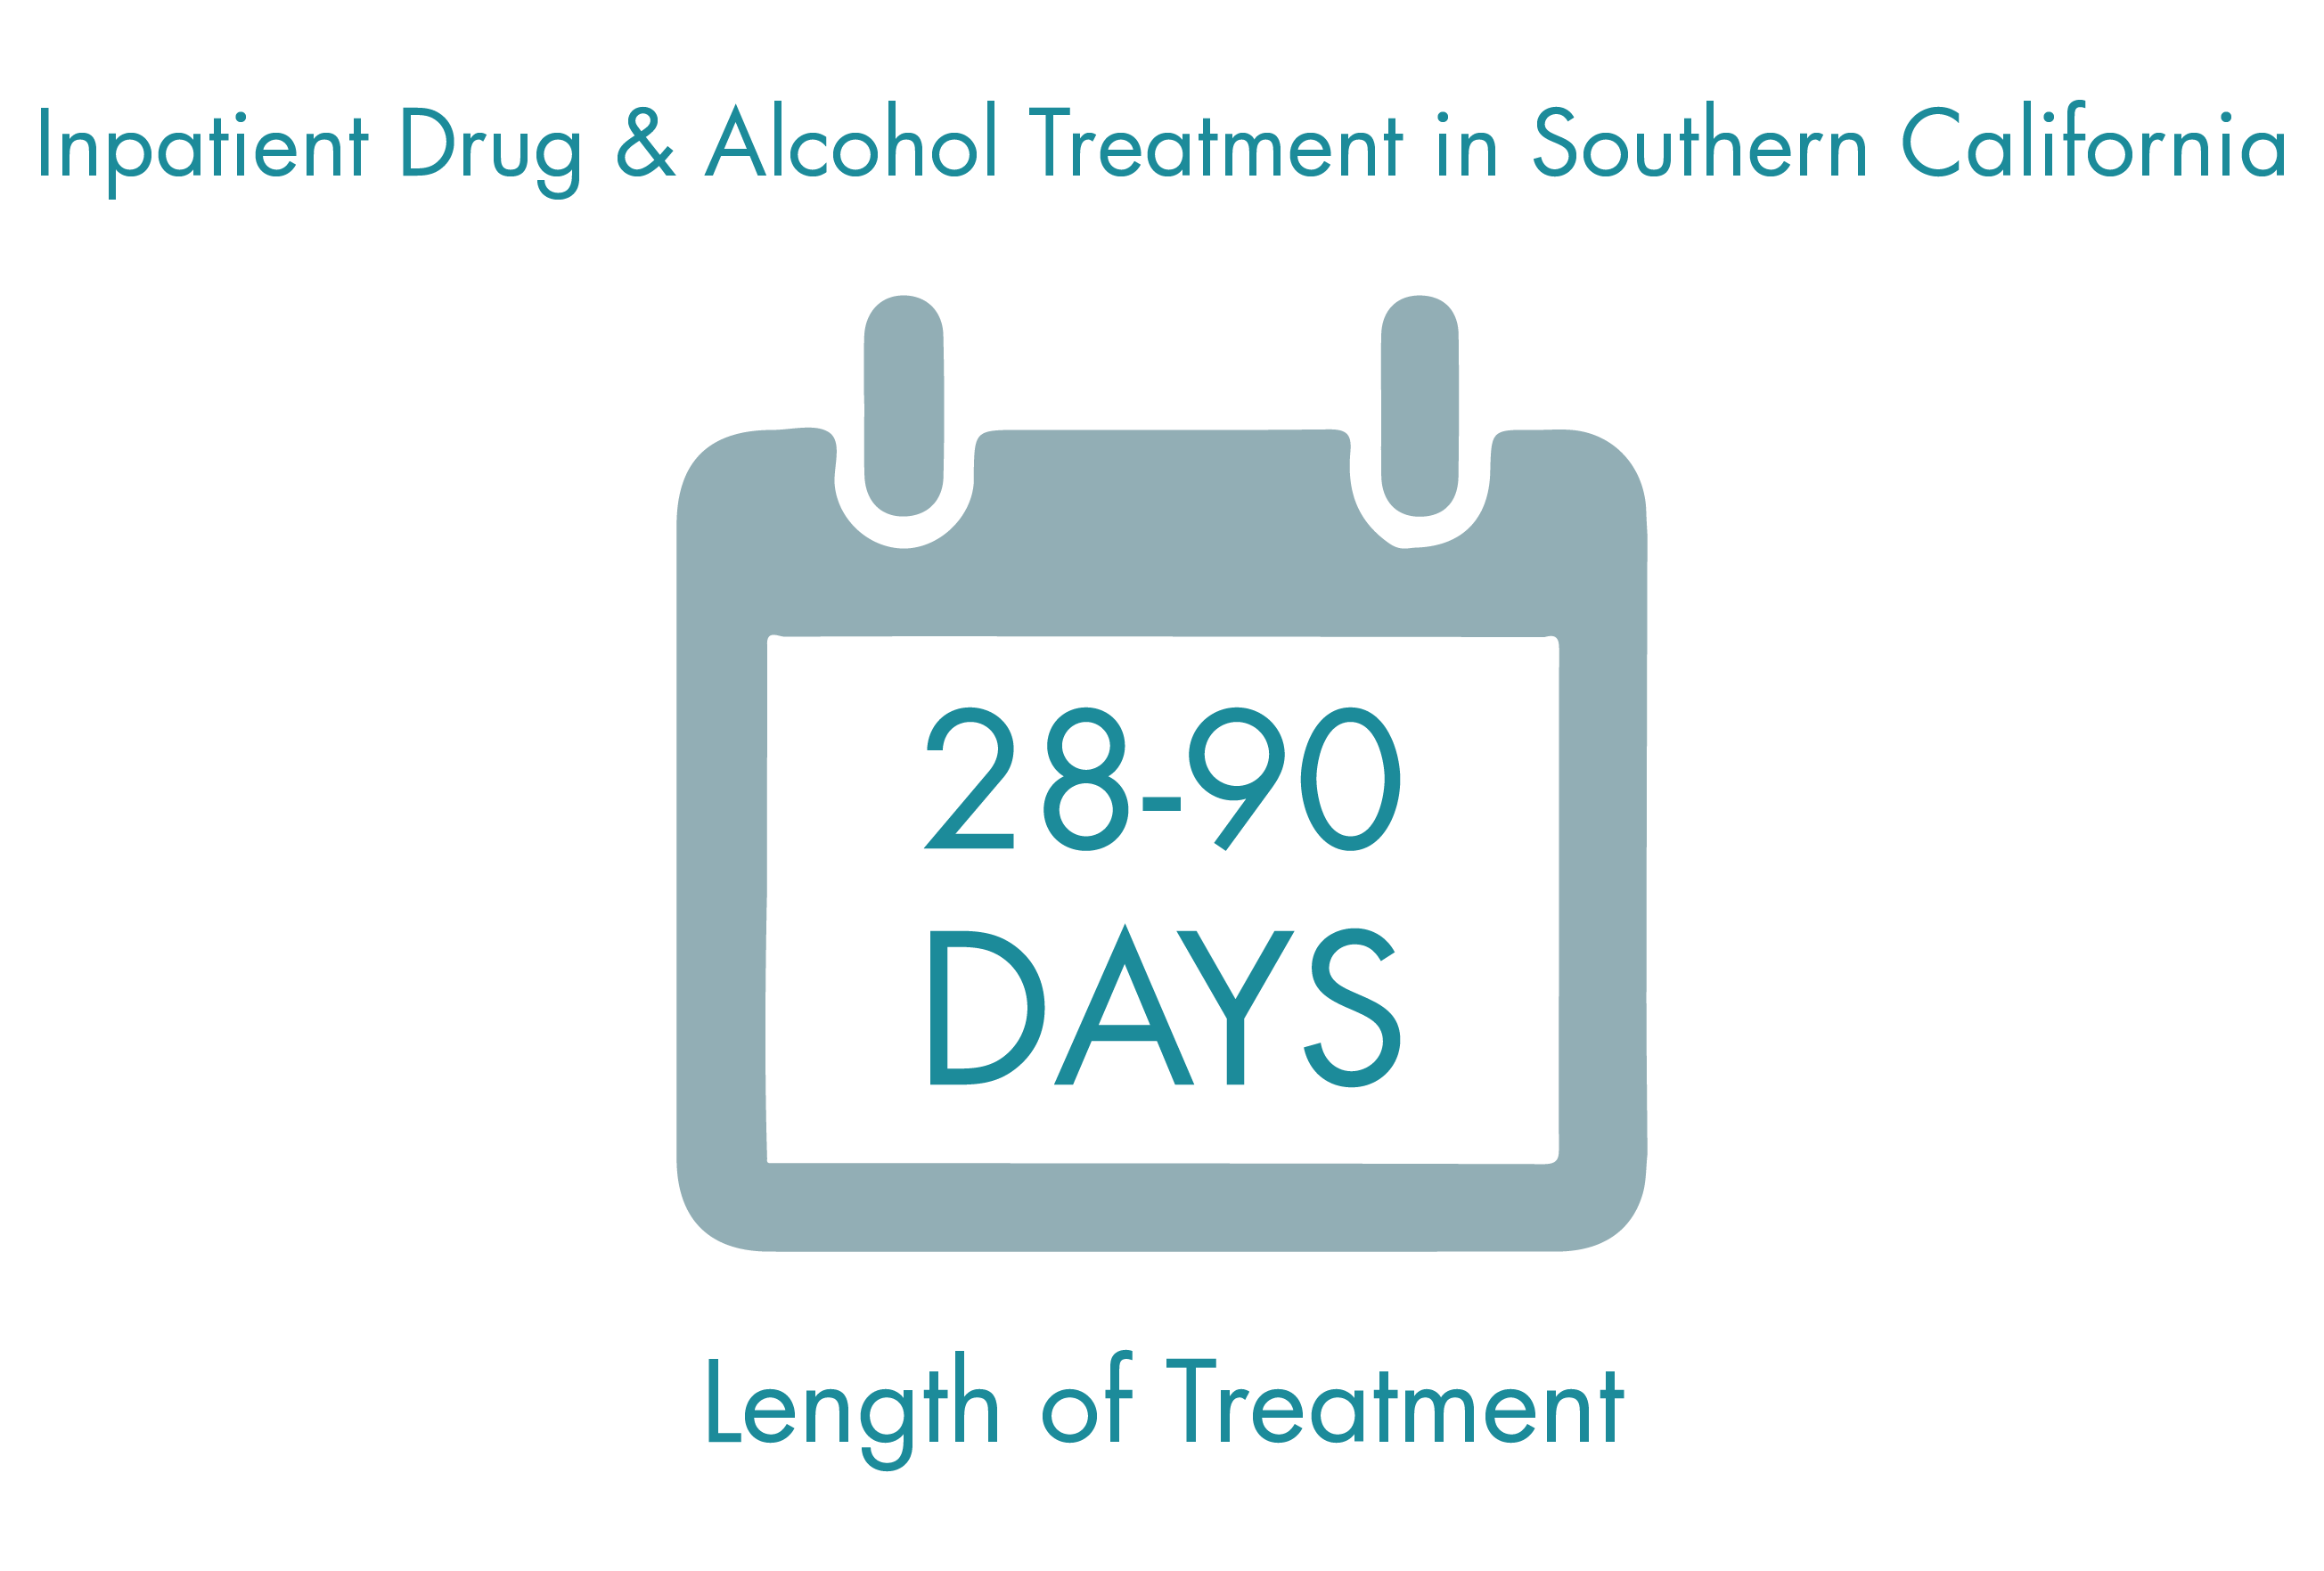 Drug & Alcohol Treatment Options in Southern California - Length of Treatment